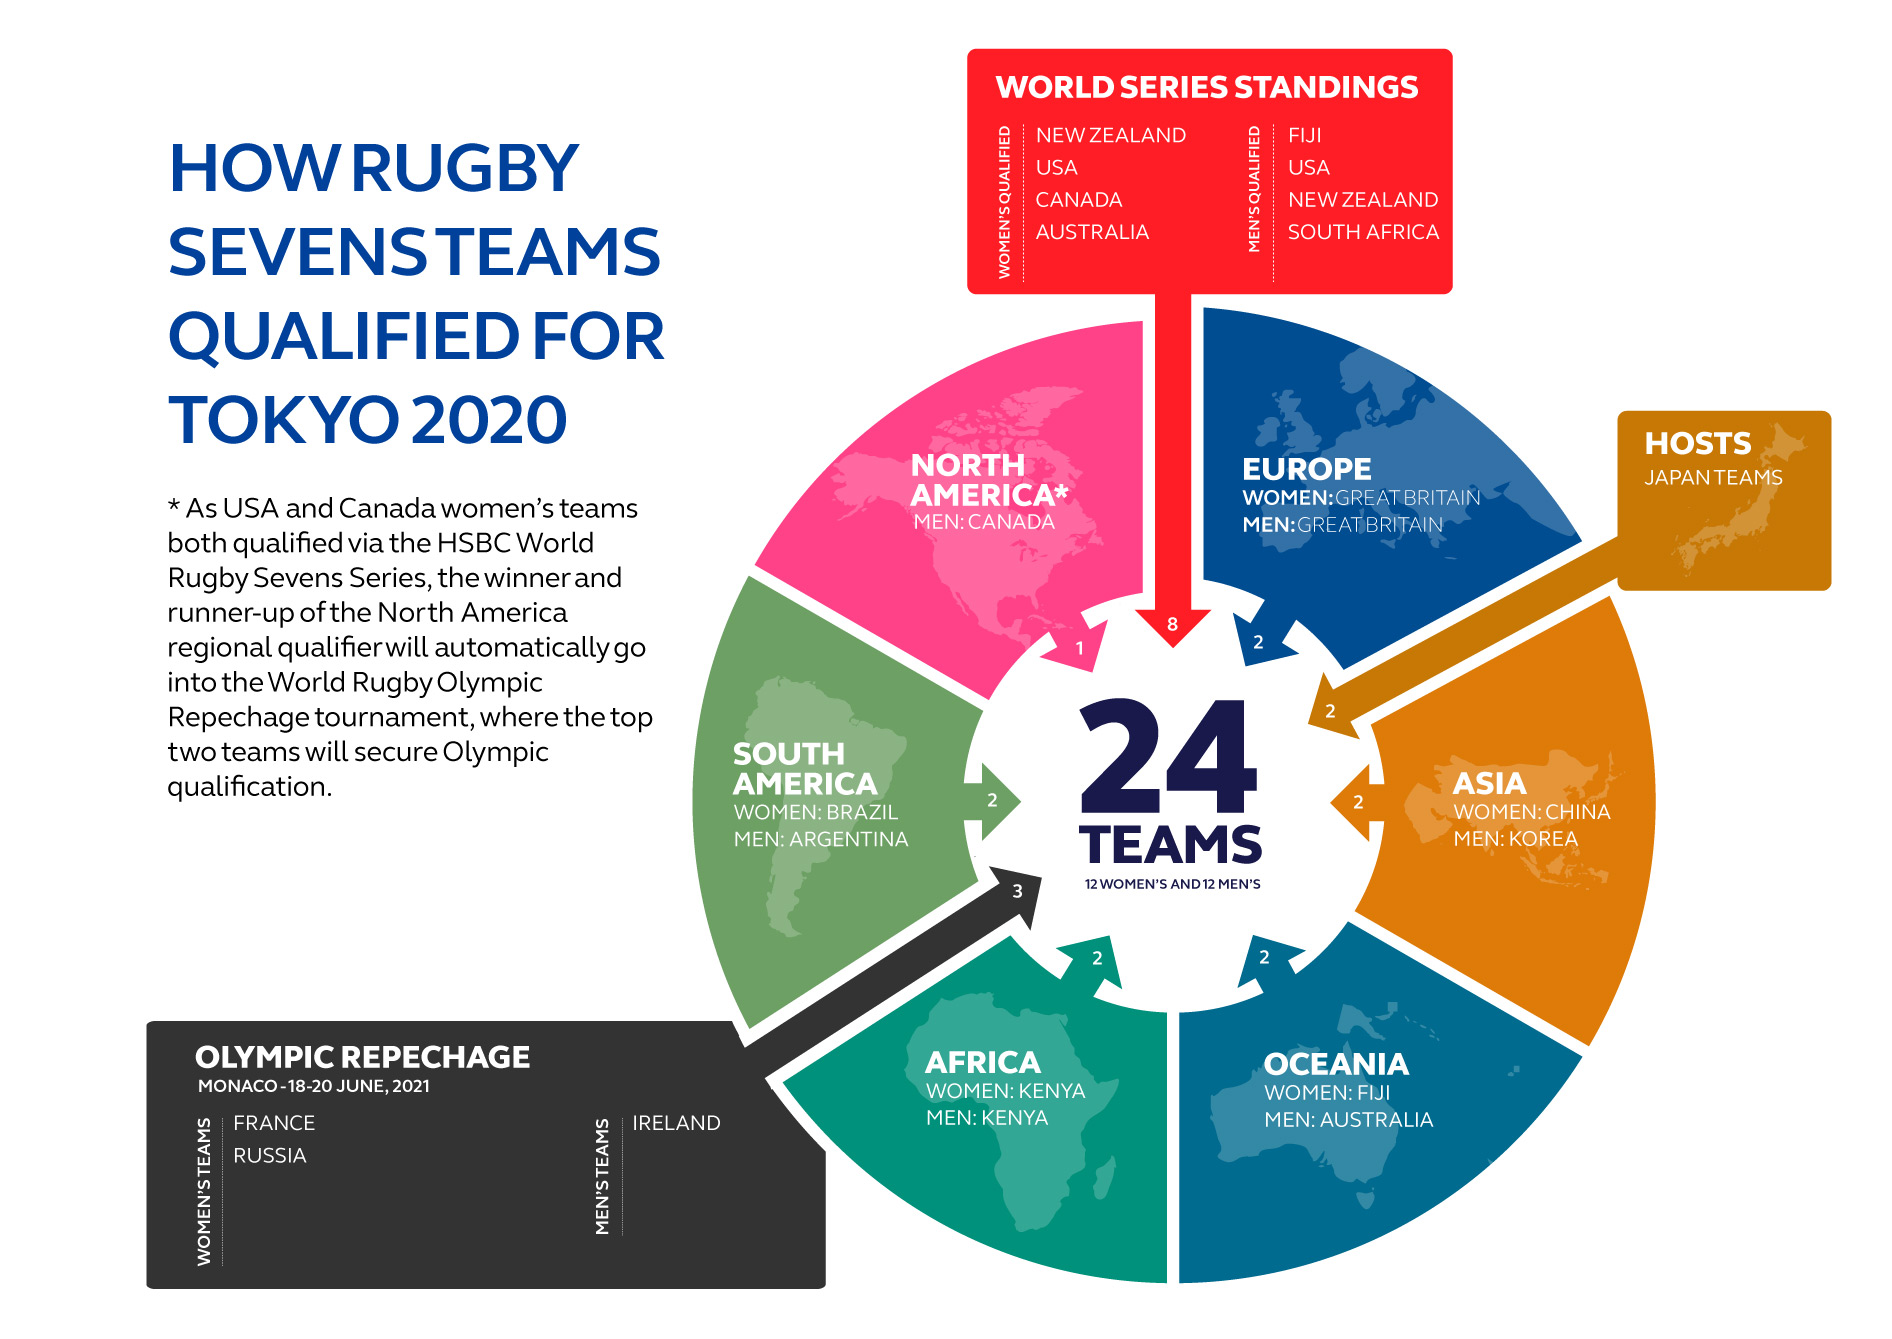 http://www.worldrugby.org/photos/645983